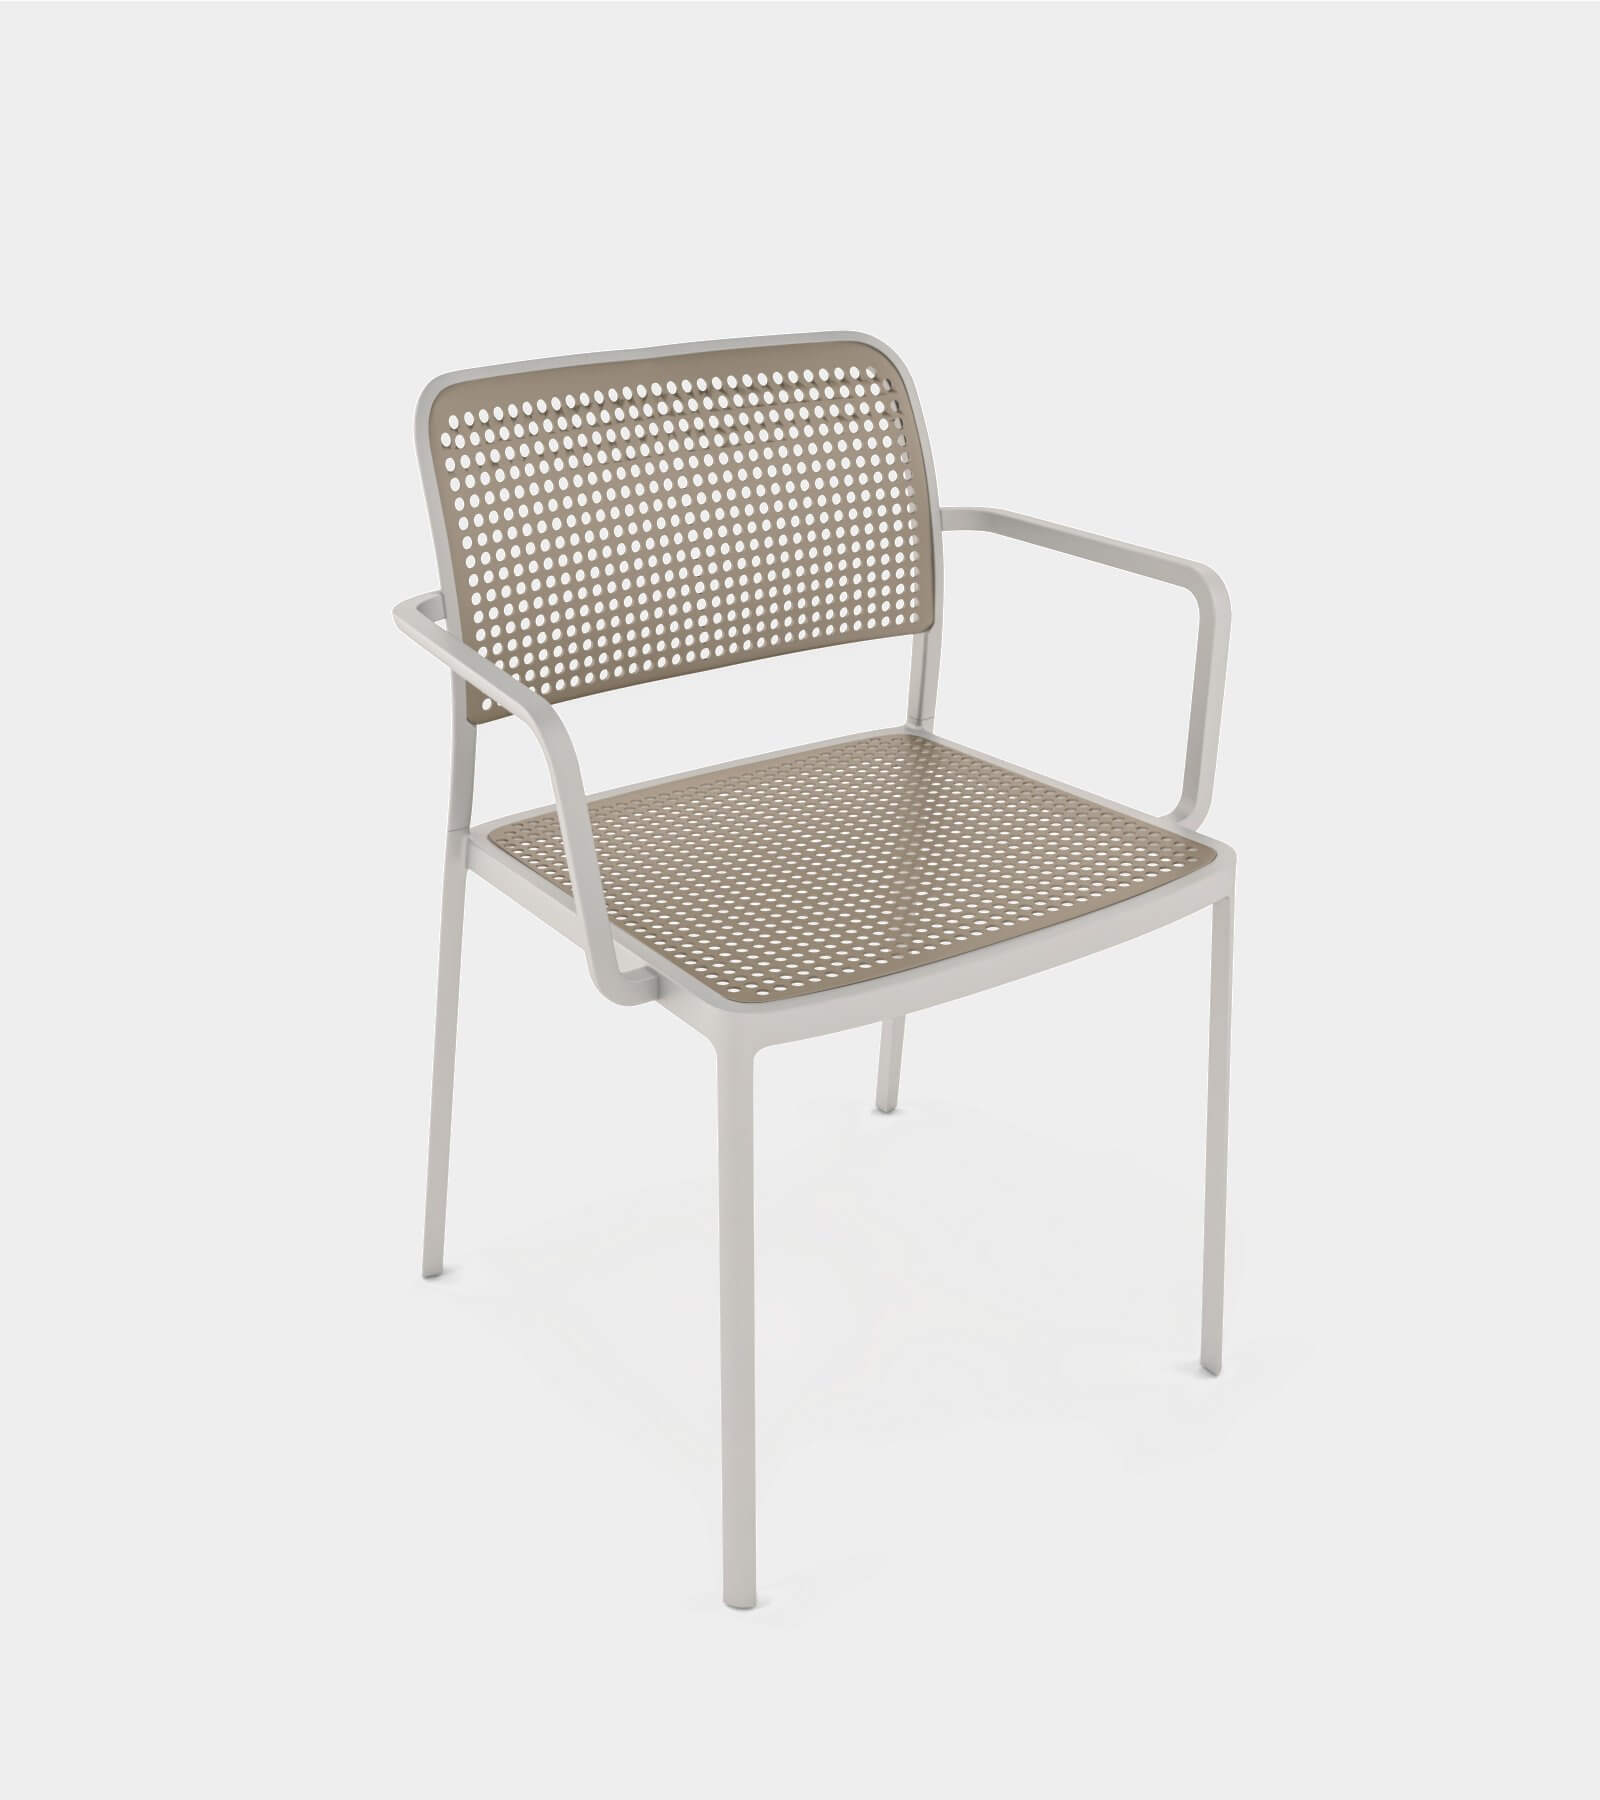 Aluminium armchair for interior and exterior-1 3D Model